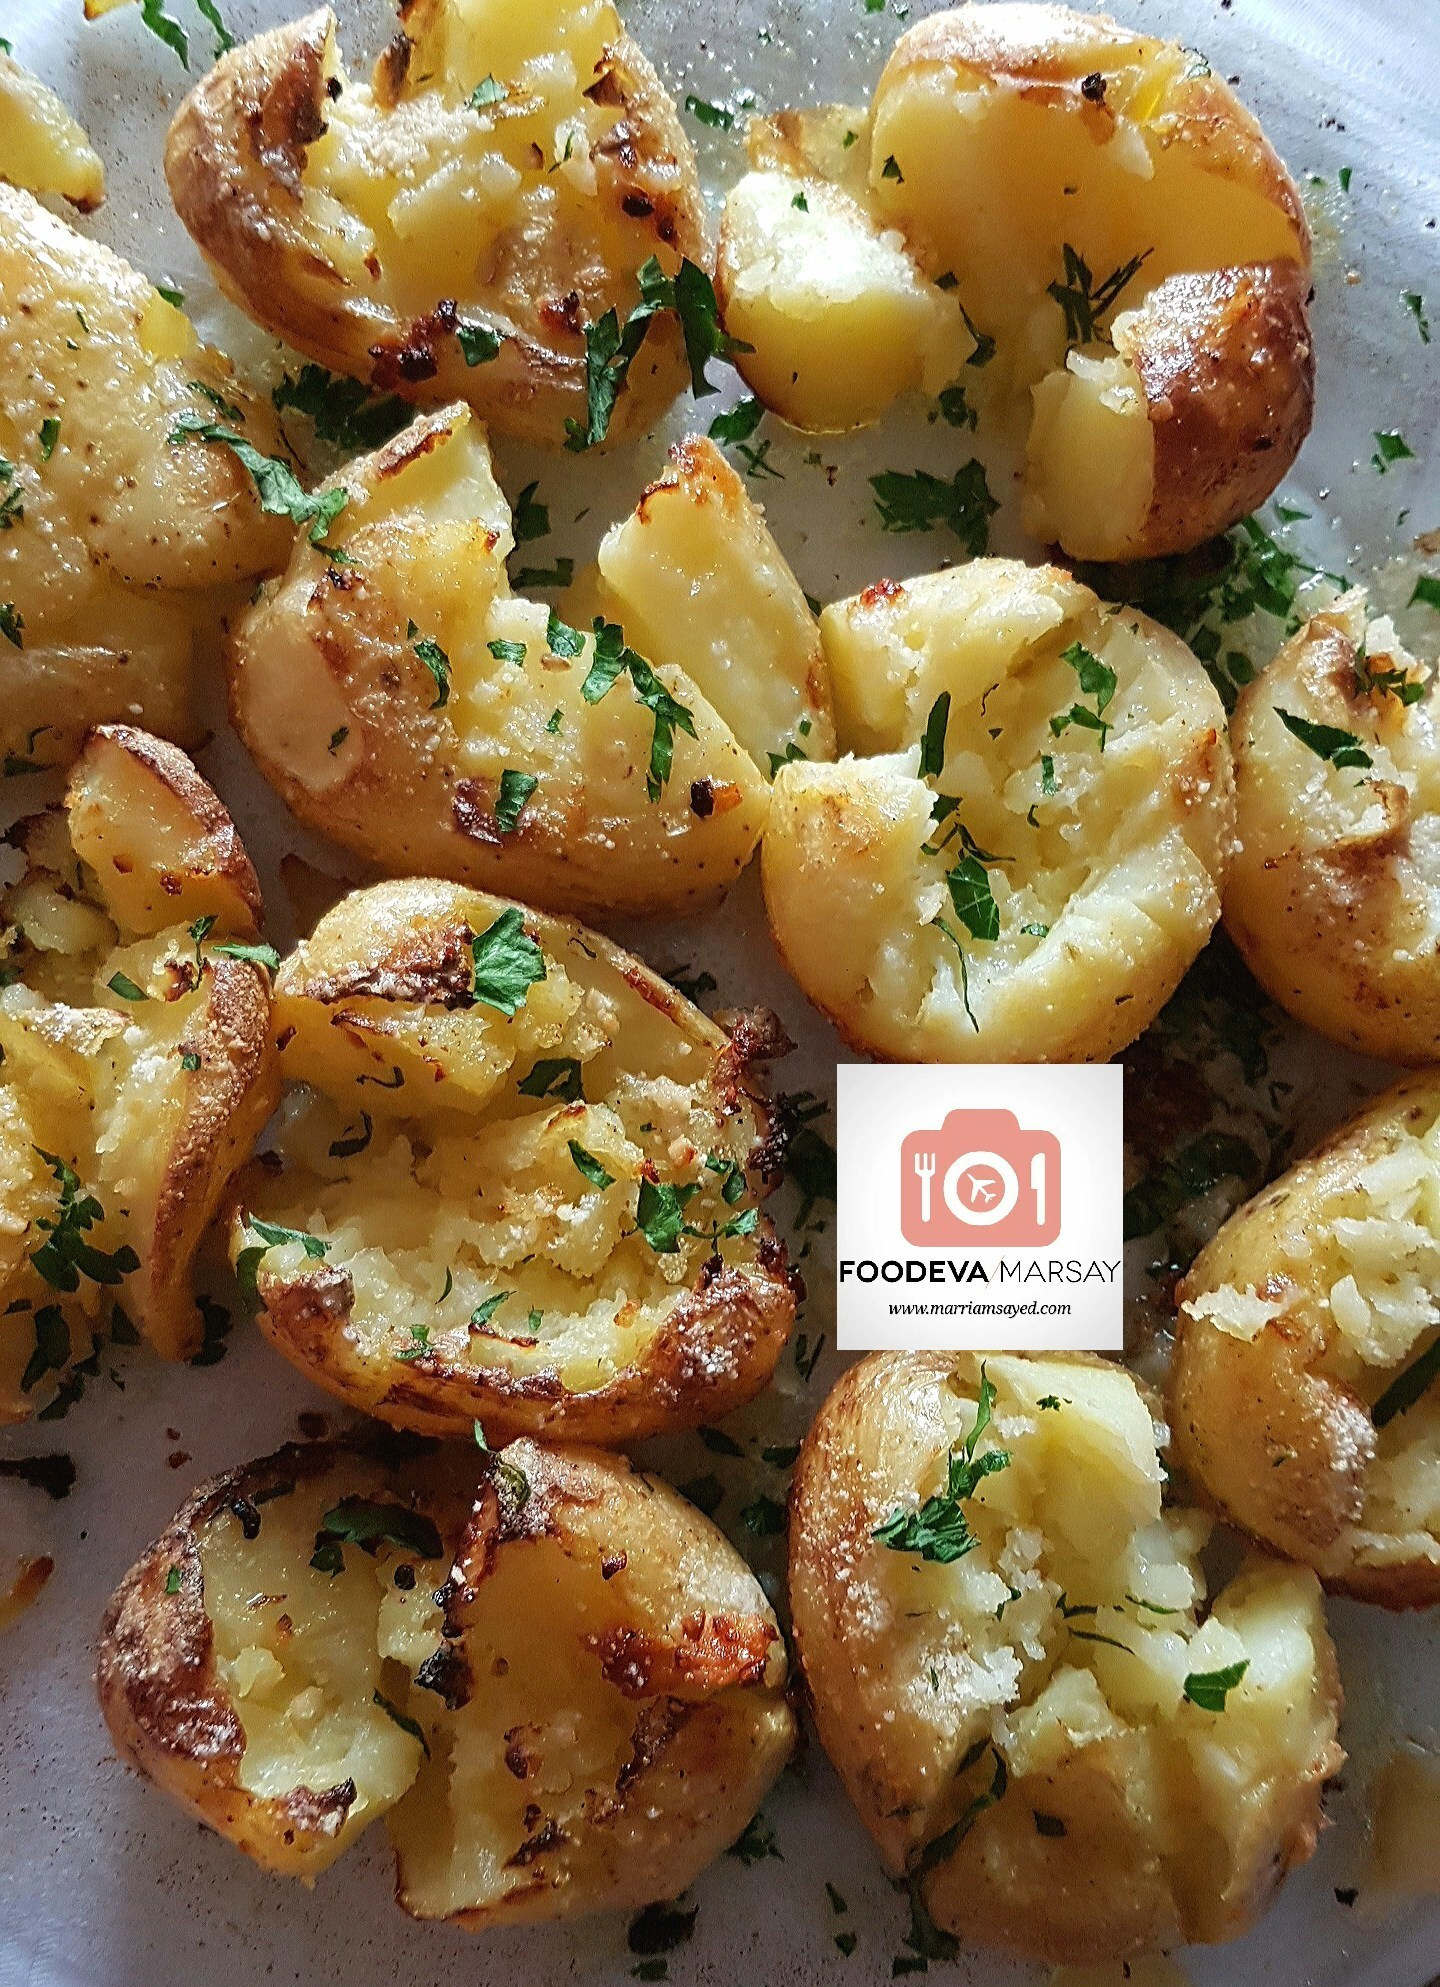 Parmesan and Garlic Smashed Potatoes